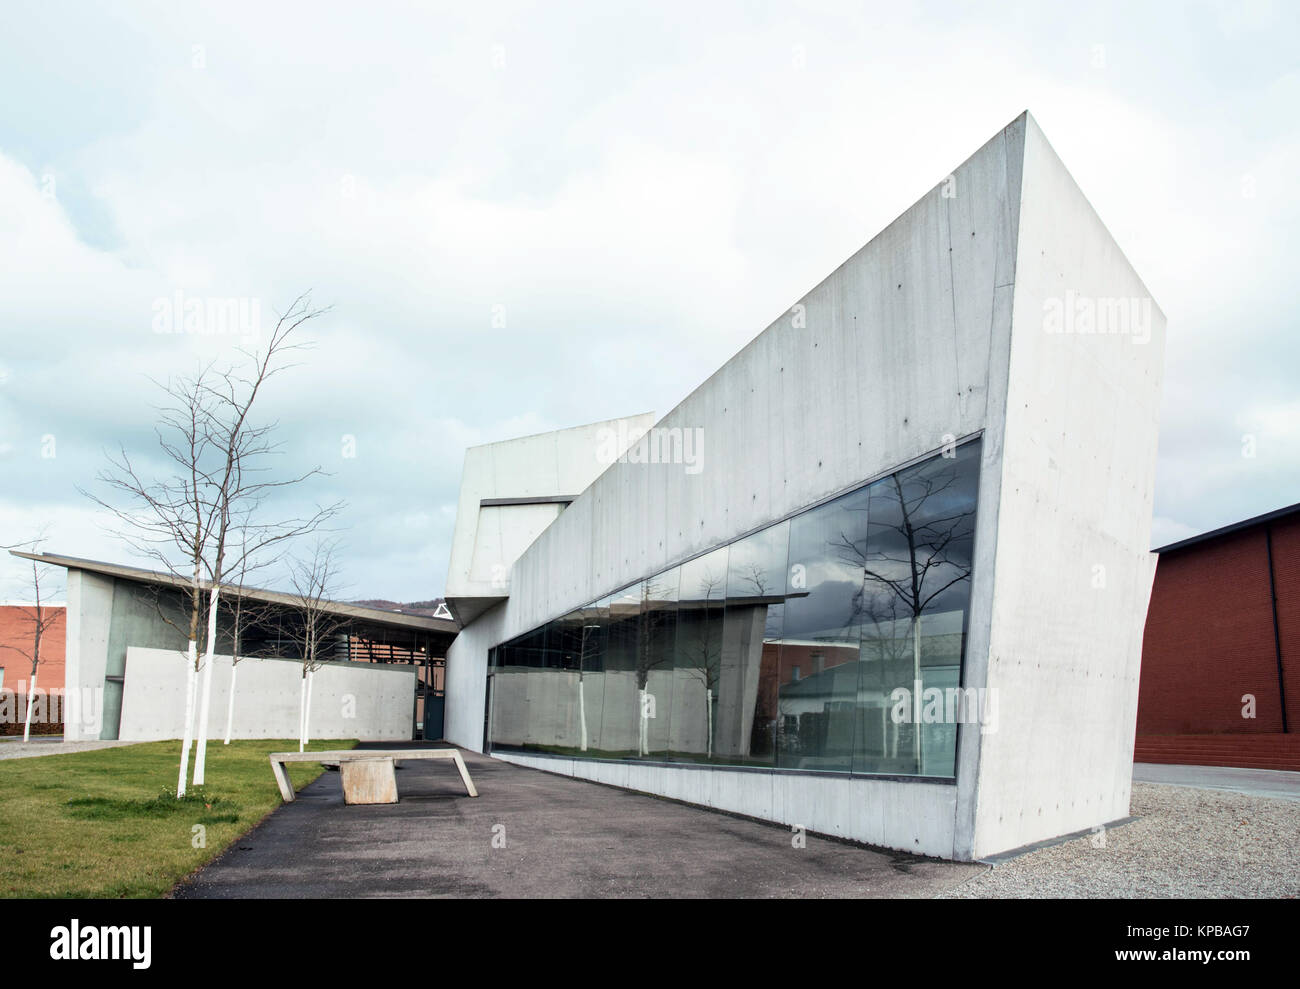 vitra fire station stock photos vitra fire station stock images alamy. Black Bedroom Furniture Sets. Home Design Ideas